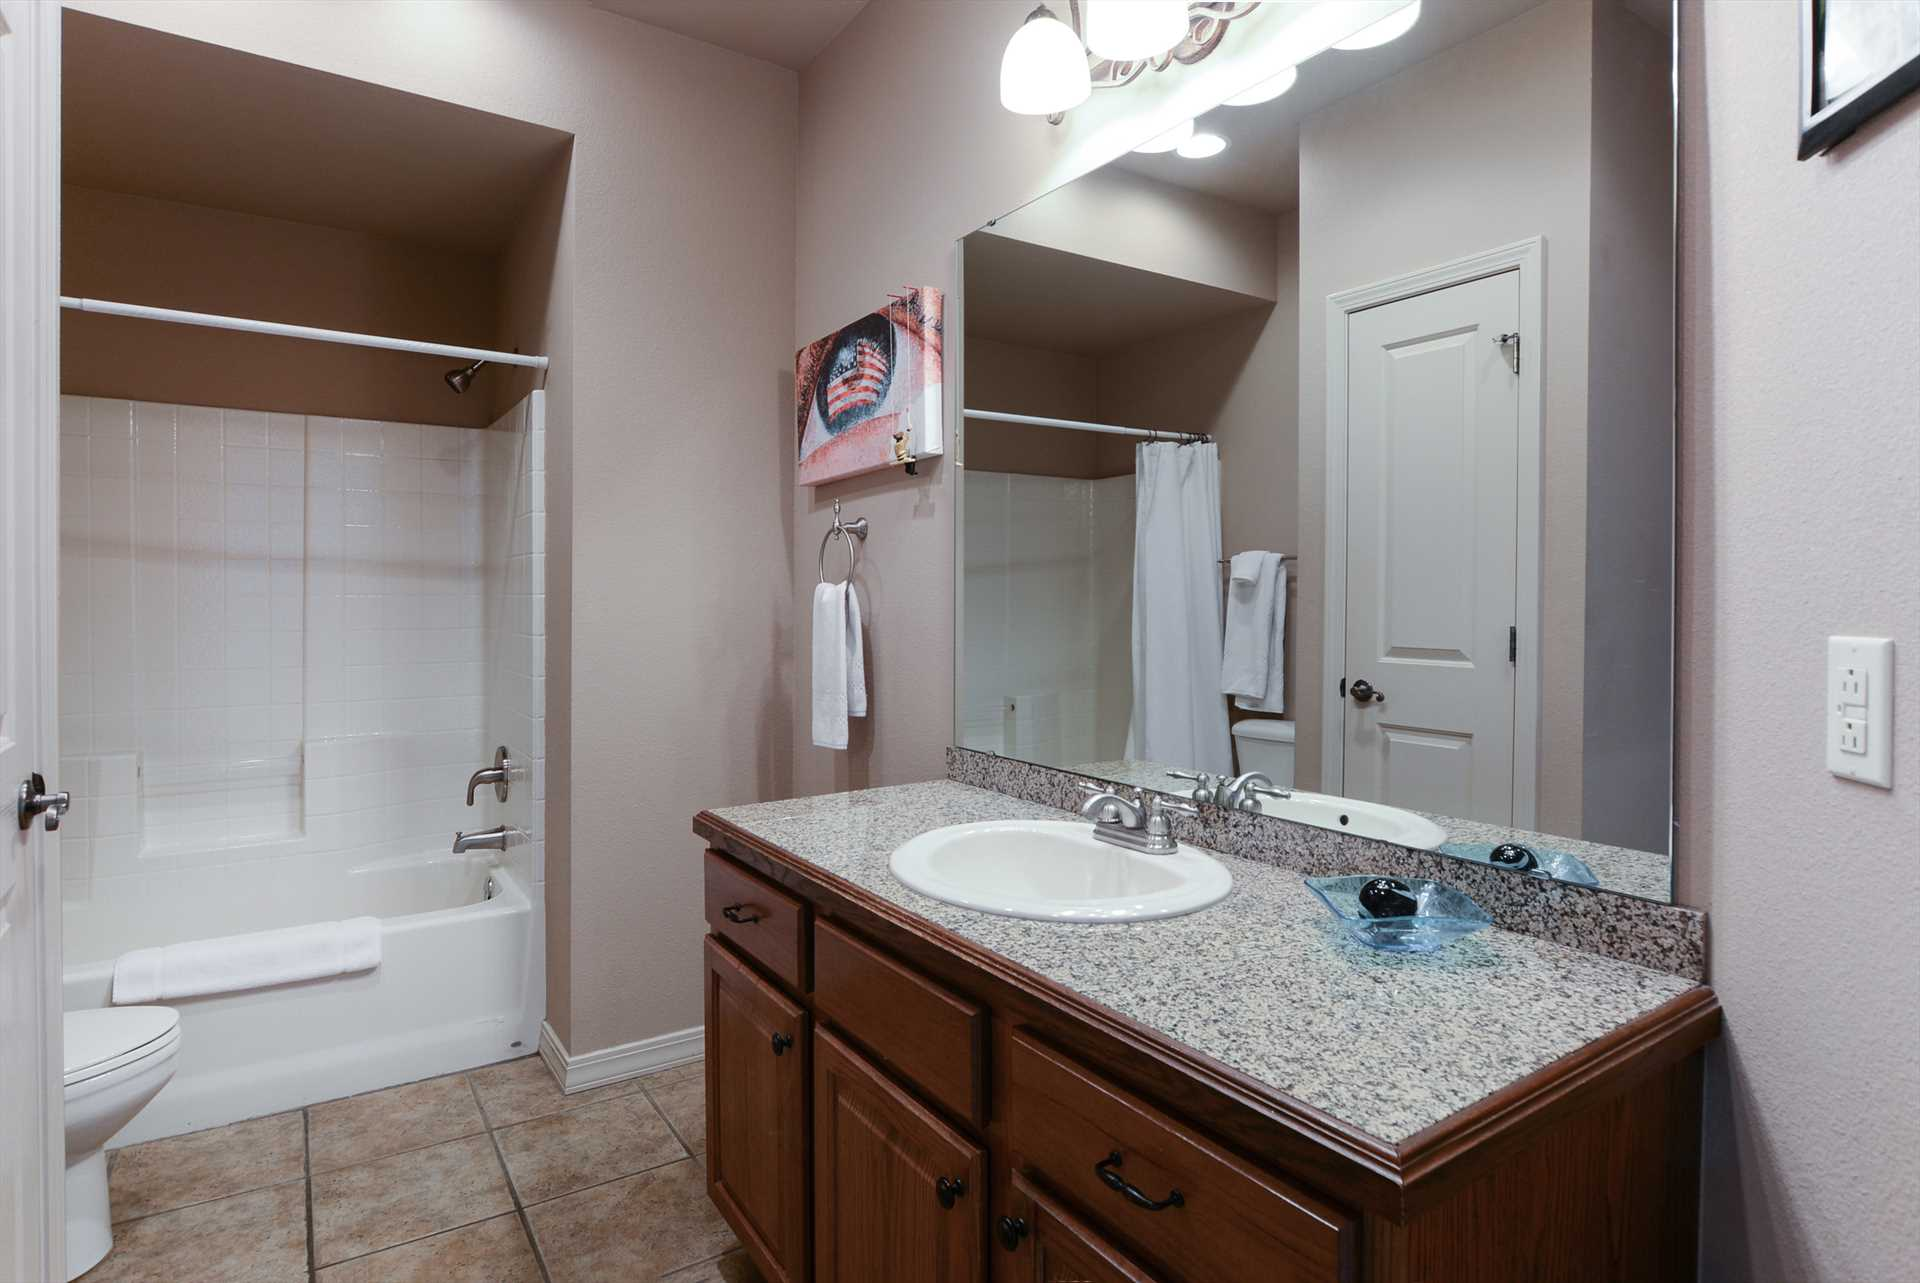 This spacious bathroom includes a full tub.